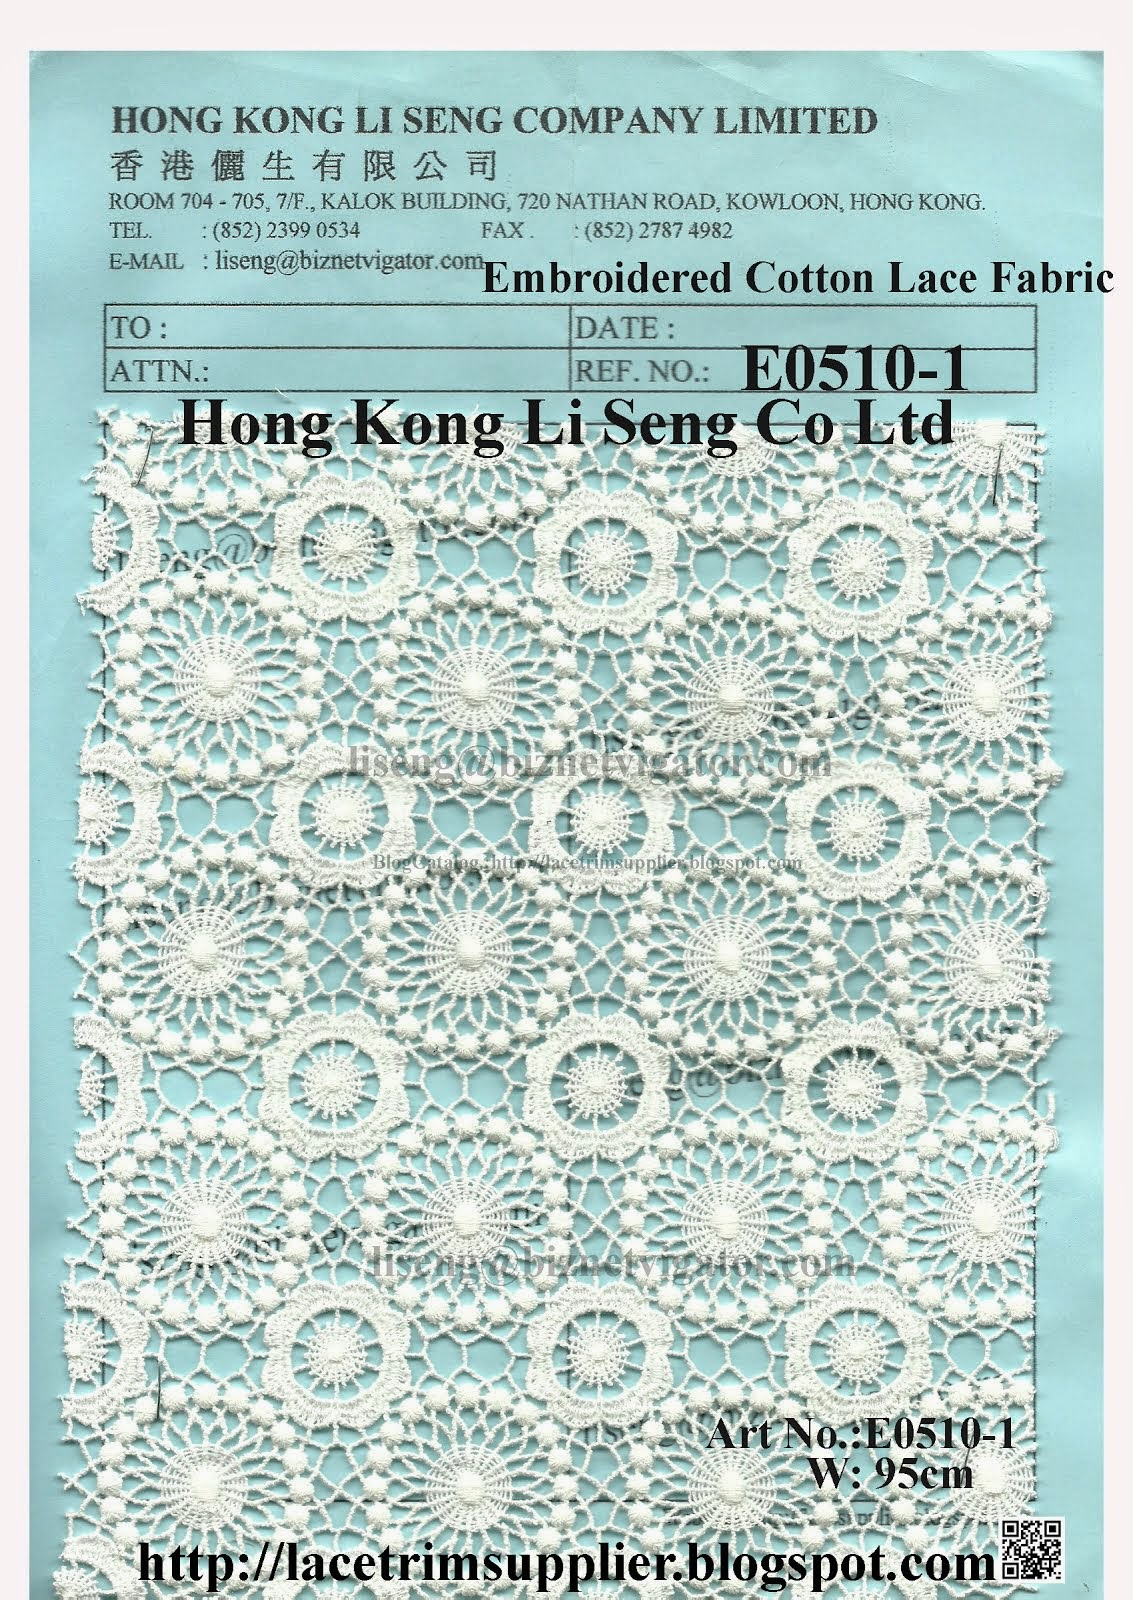 2014 - New Lace Fabric Pattern Shown On - Hong Kong Li Seng Co Ltd